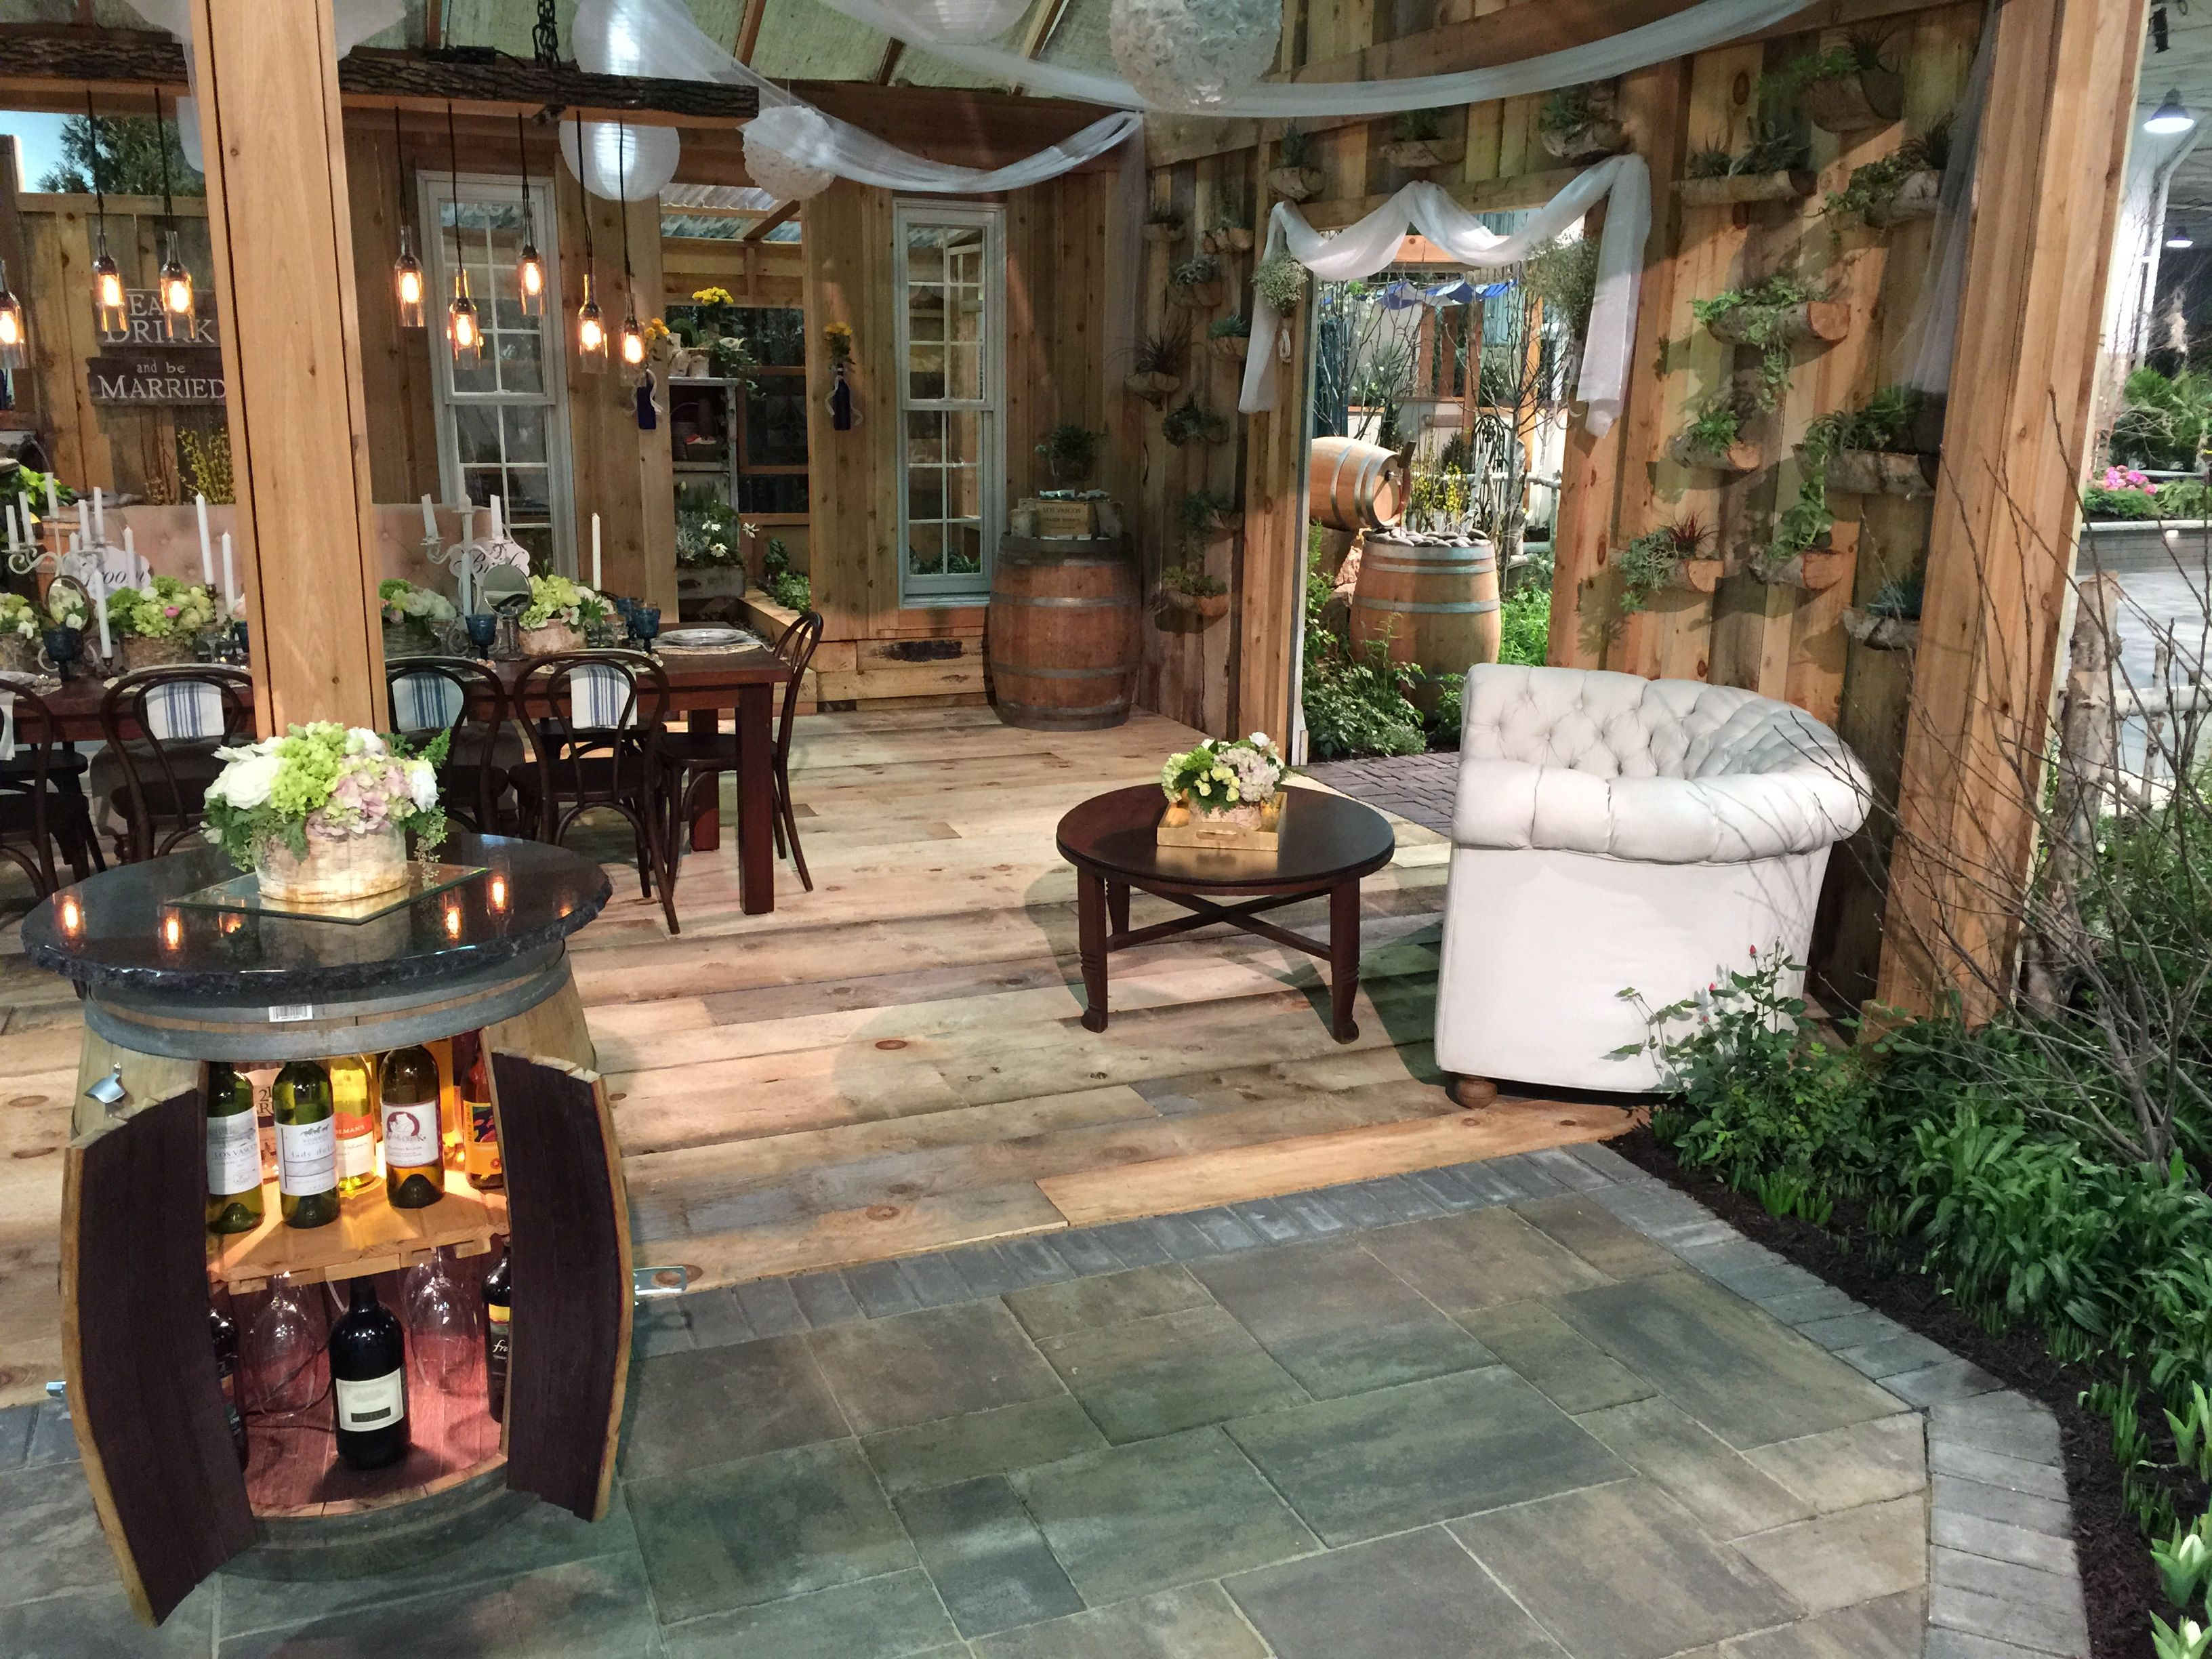 40 best Cleveland Ohio 2016 Home, Garden & Flower Show images on ...